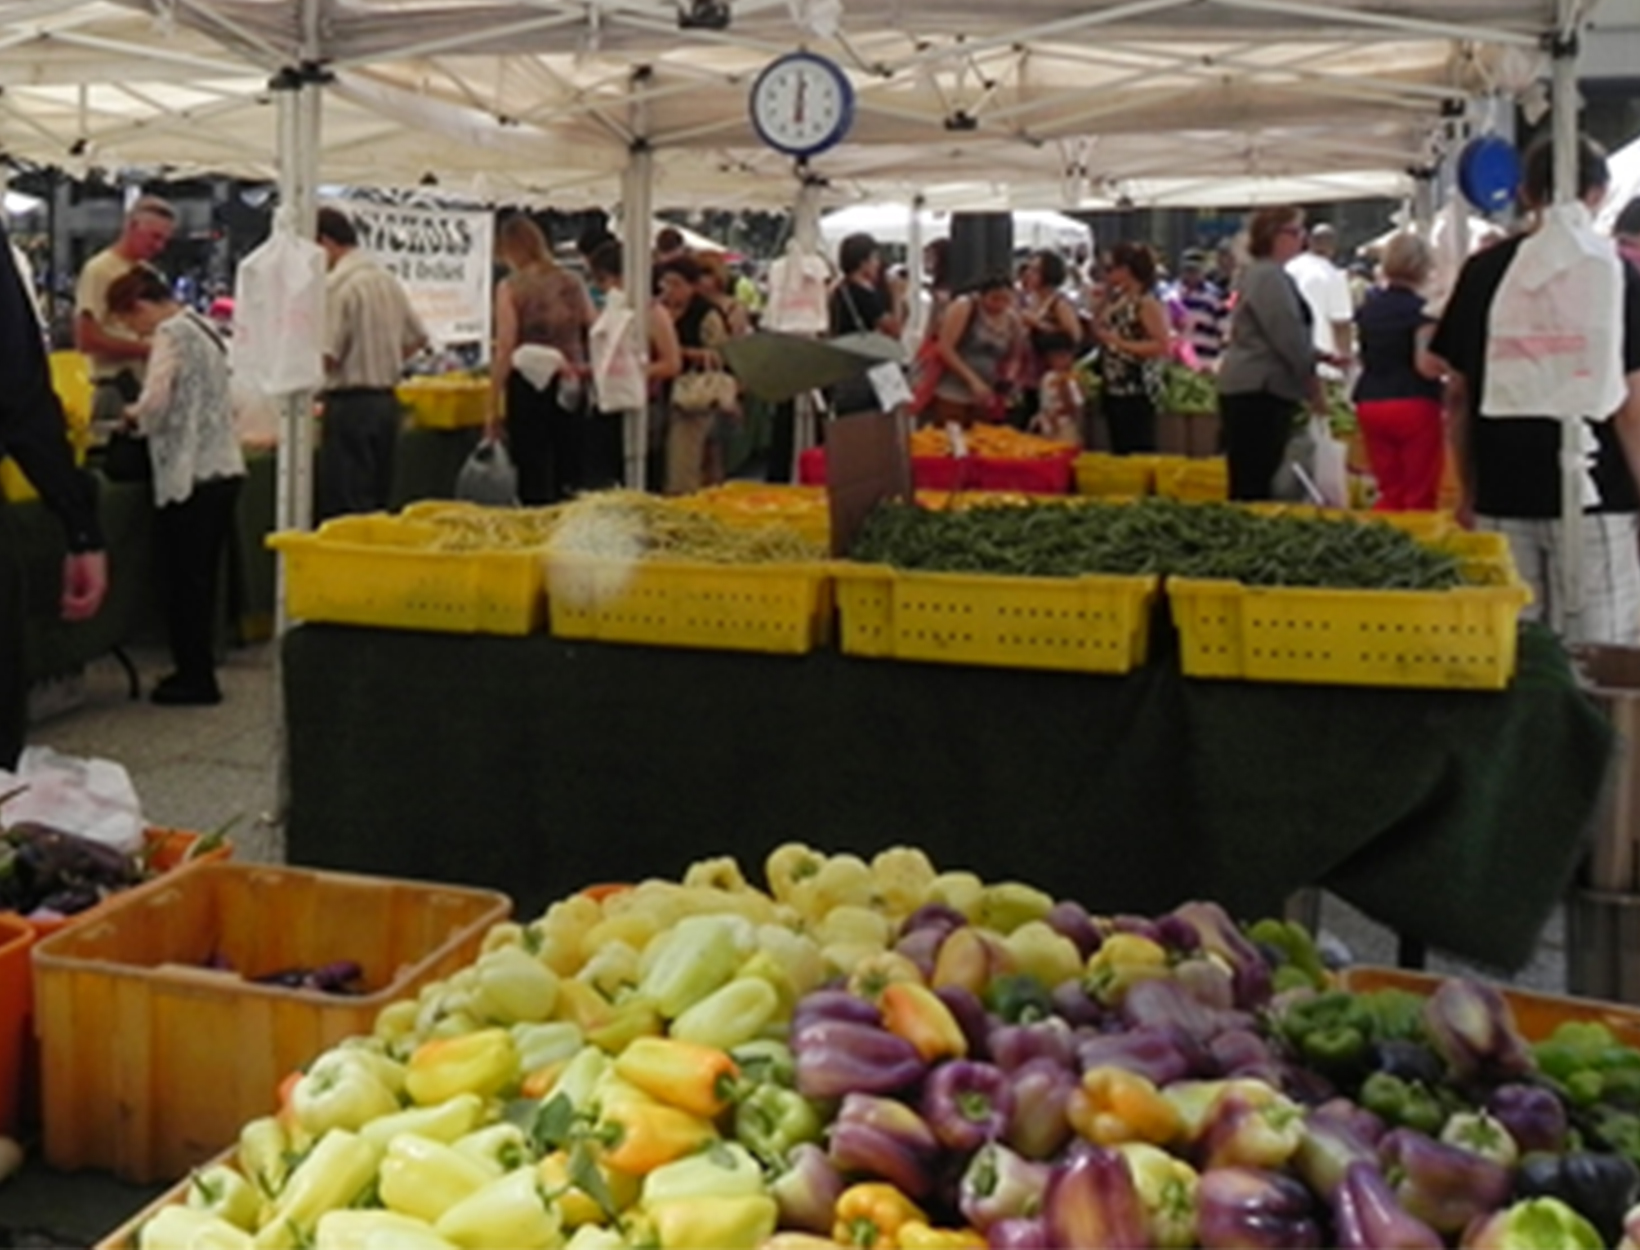 Lincoln Park Farmers Market